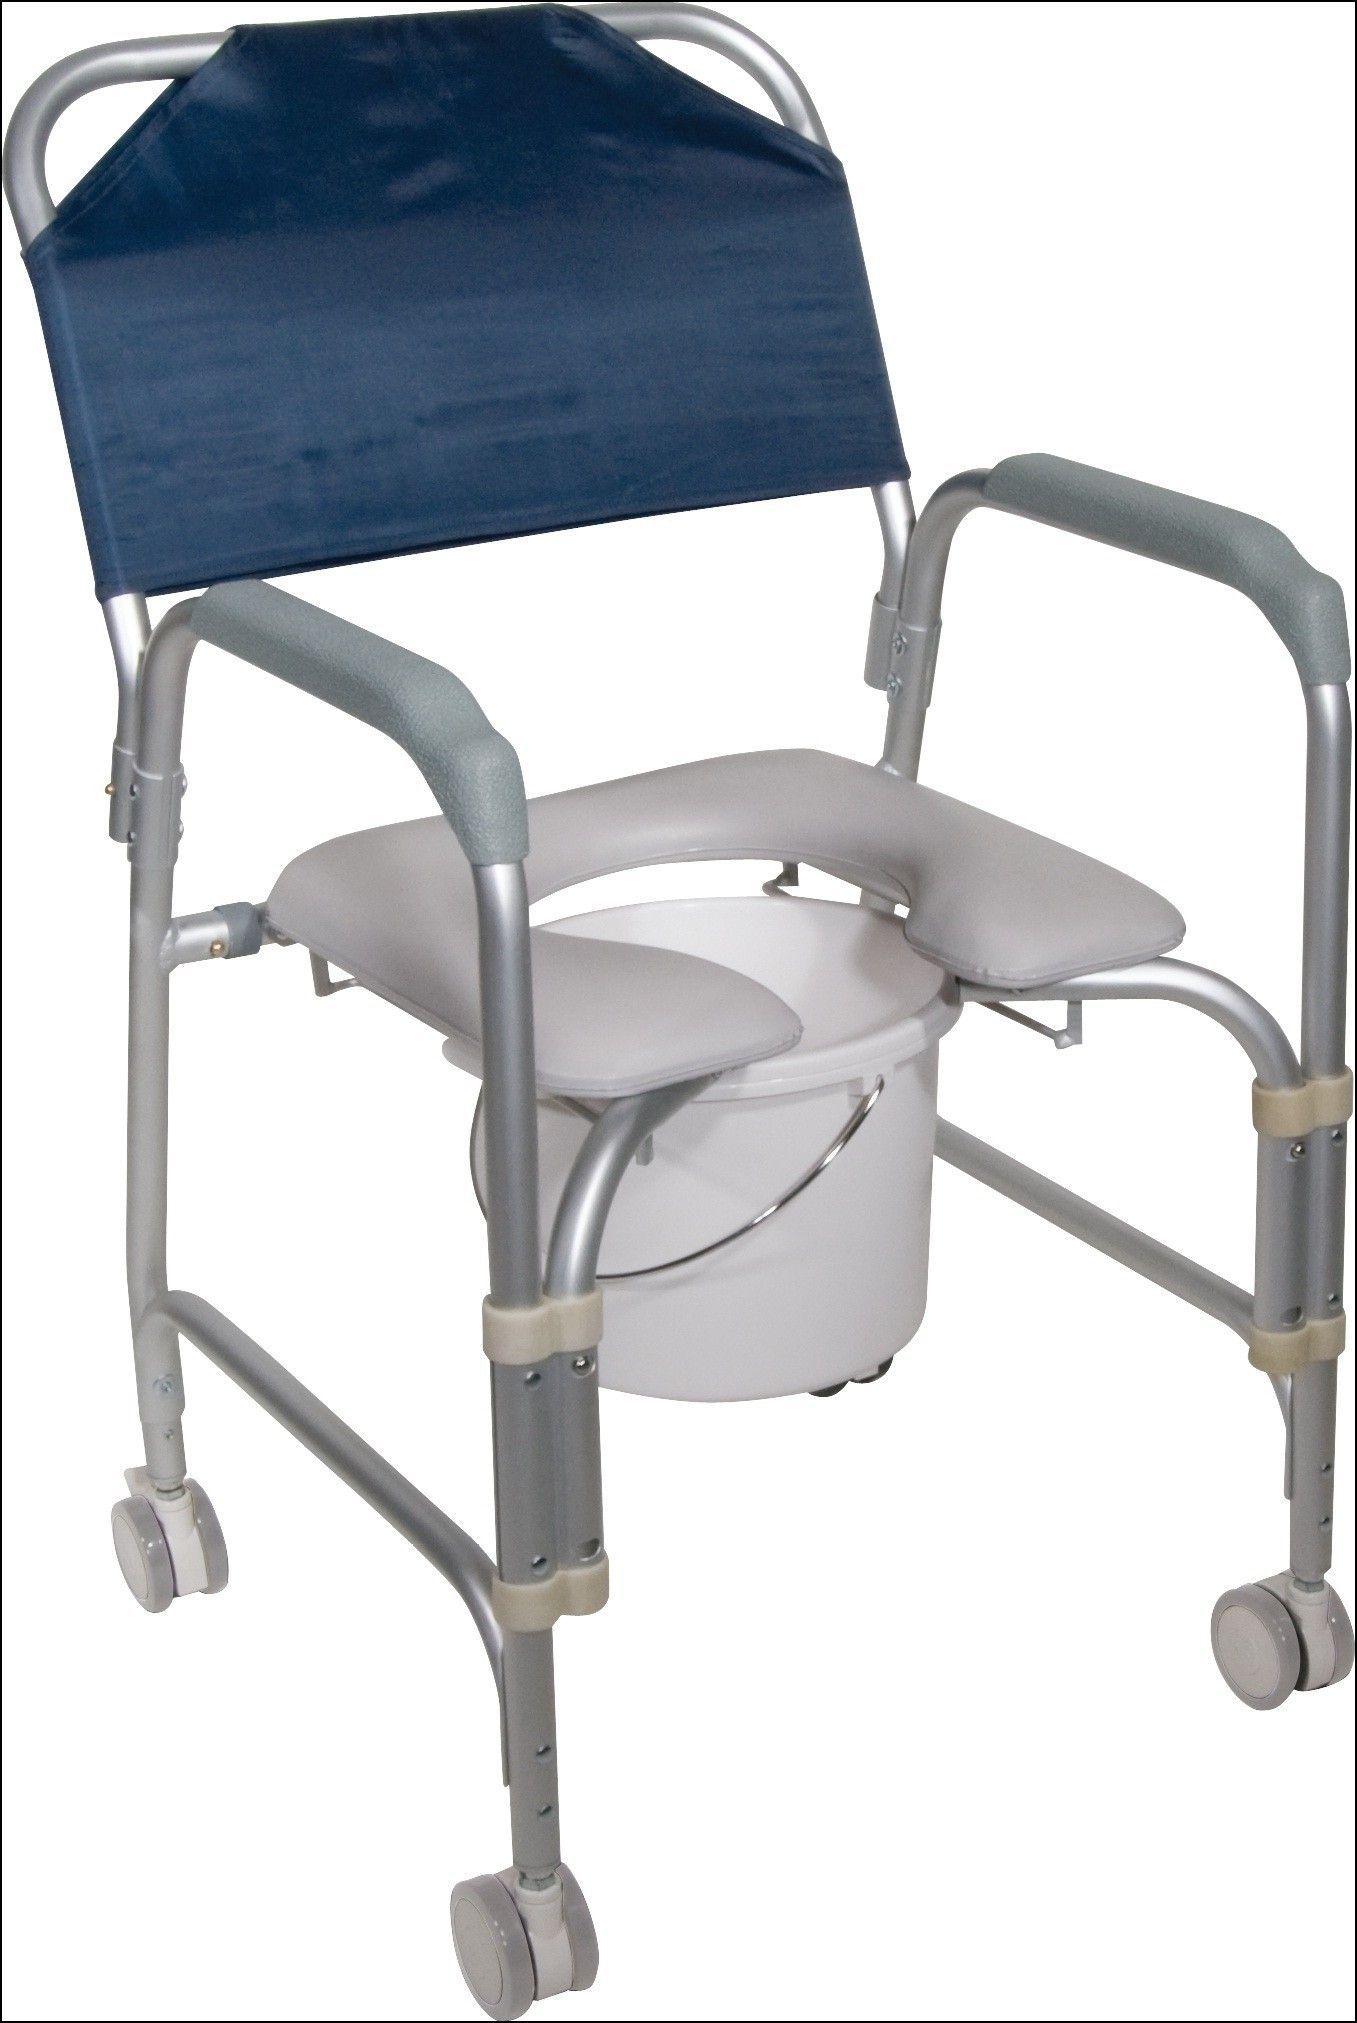 Shower Chairs with Wheels for Disabled | Wheels - Tires Gallery ...